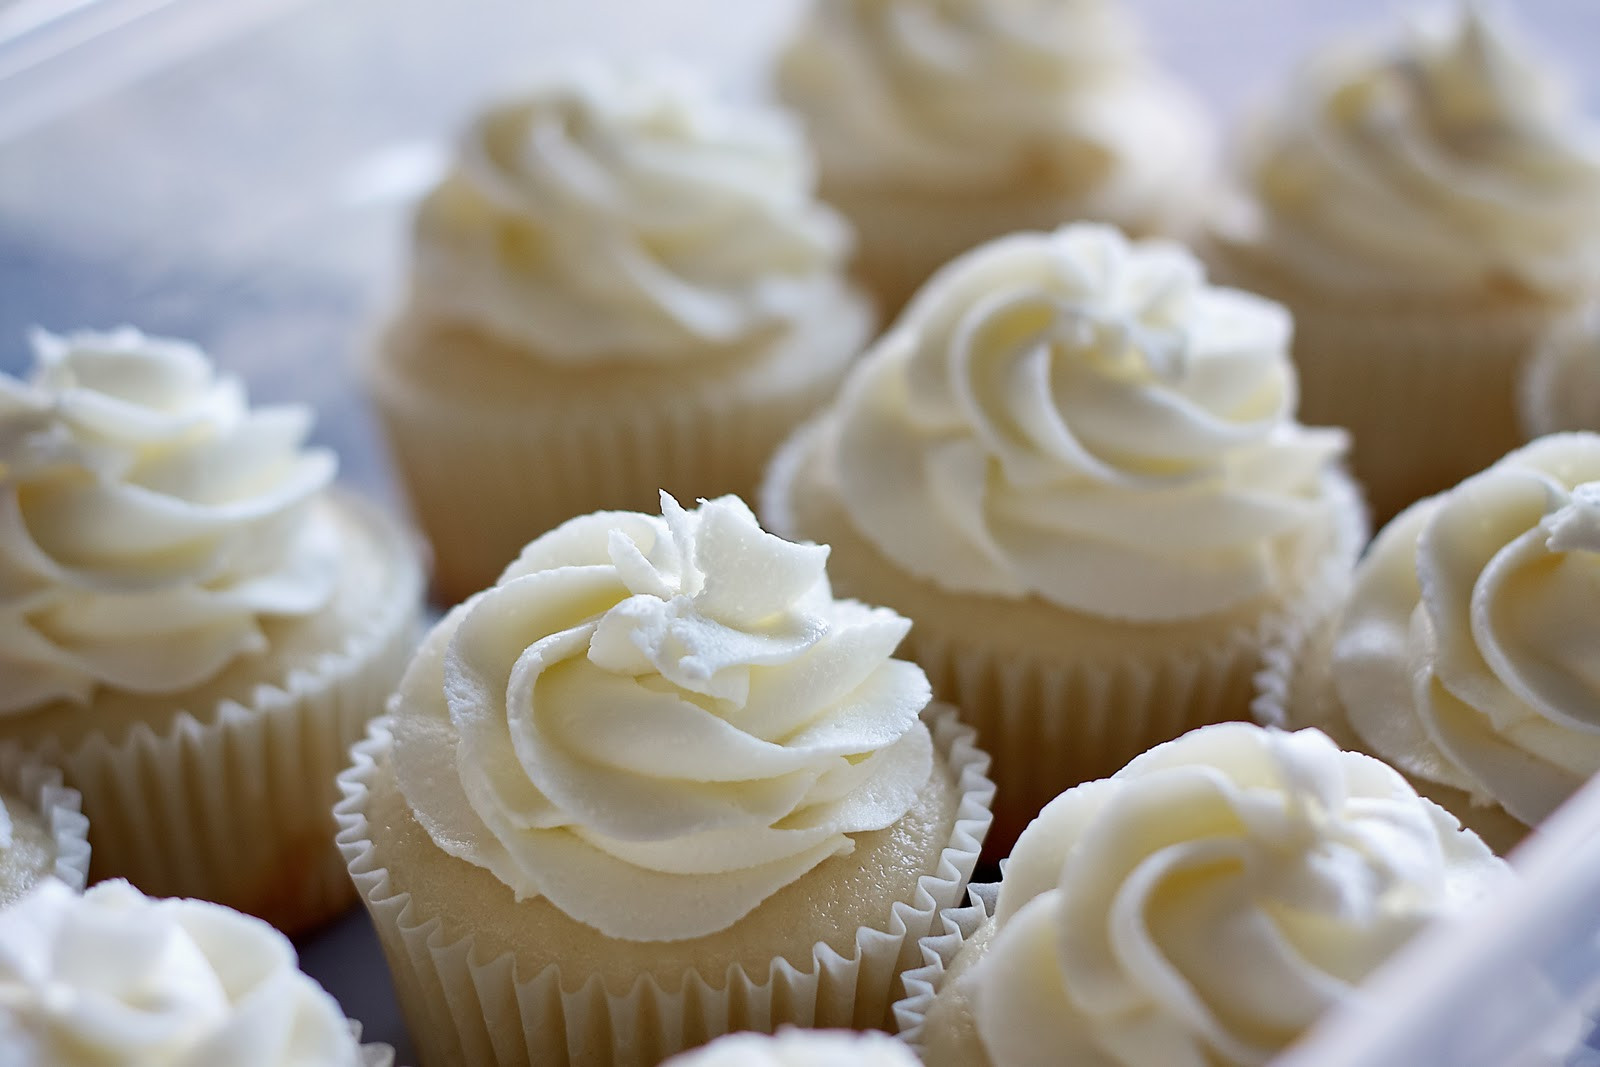 White Wedding Cake Cupcakes  Simply Cupcakes White Wedding Cake Cupcakes